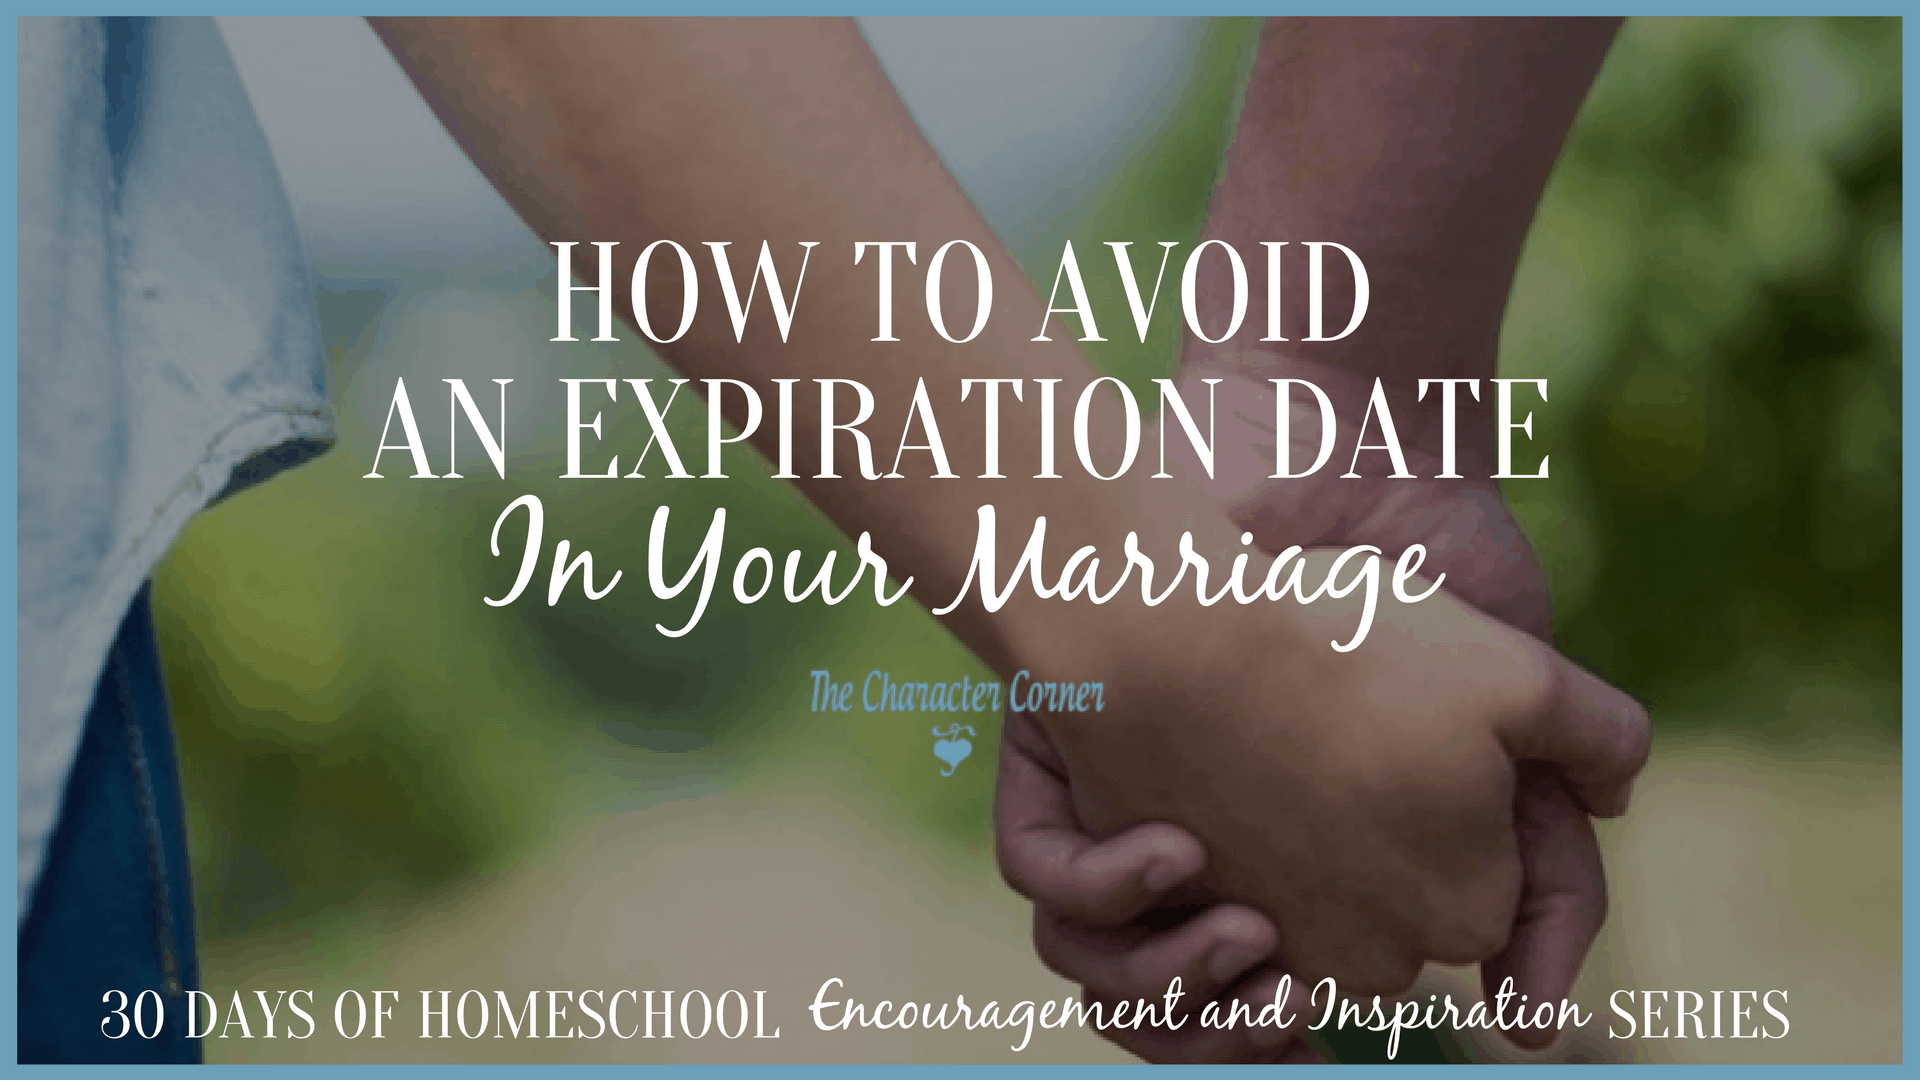 an expiration date on marriages It is also important to know that marriage licenses do have an expiration date, normally between 30-60 days, so make sure that you know your.